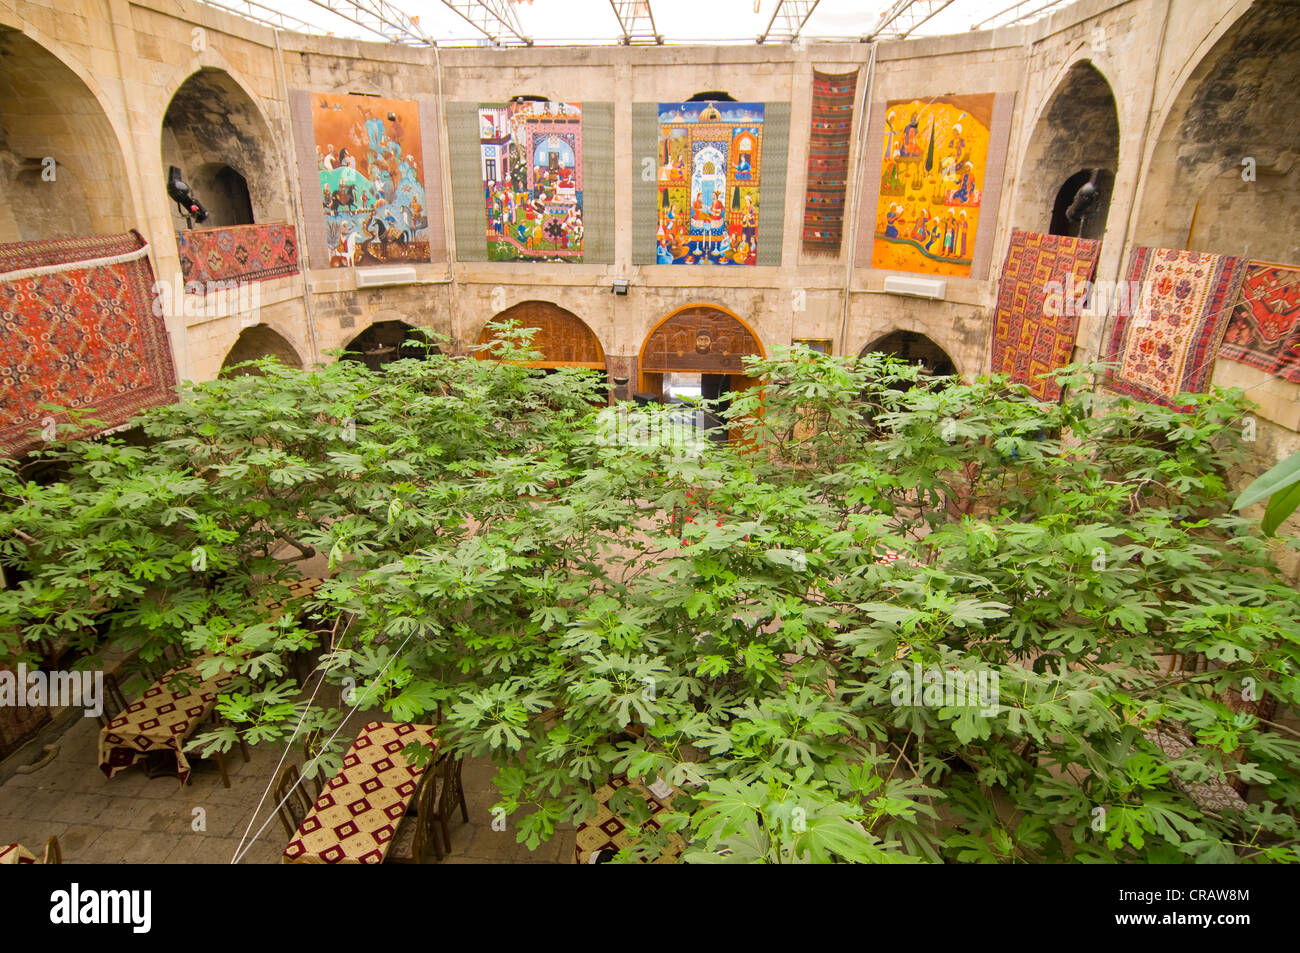 Paintings in the inner courtyard of an historic caravansary, Baku, Azerbaijan, Middle East - Stock Image